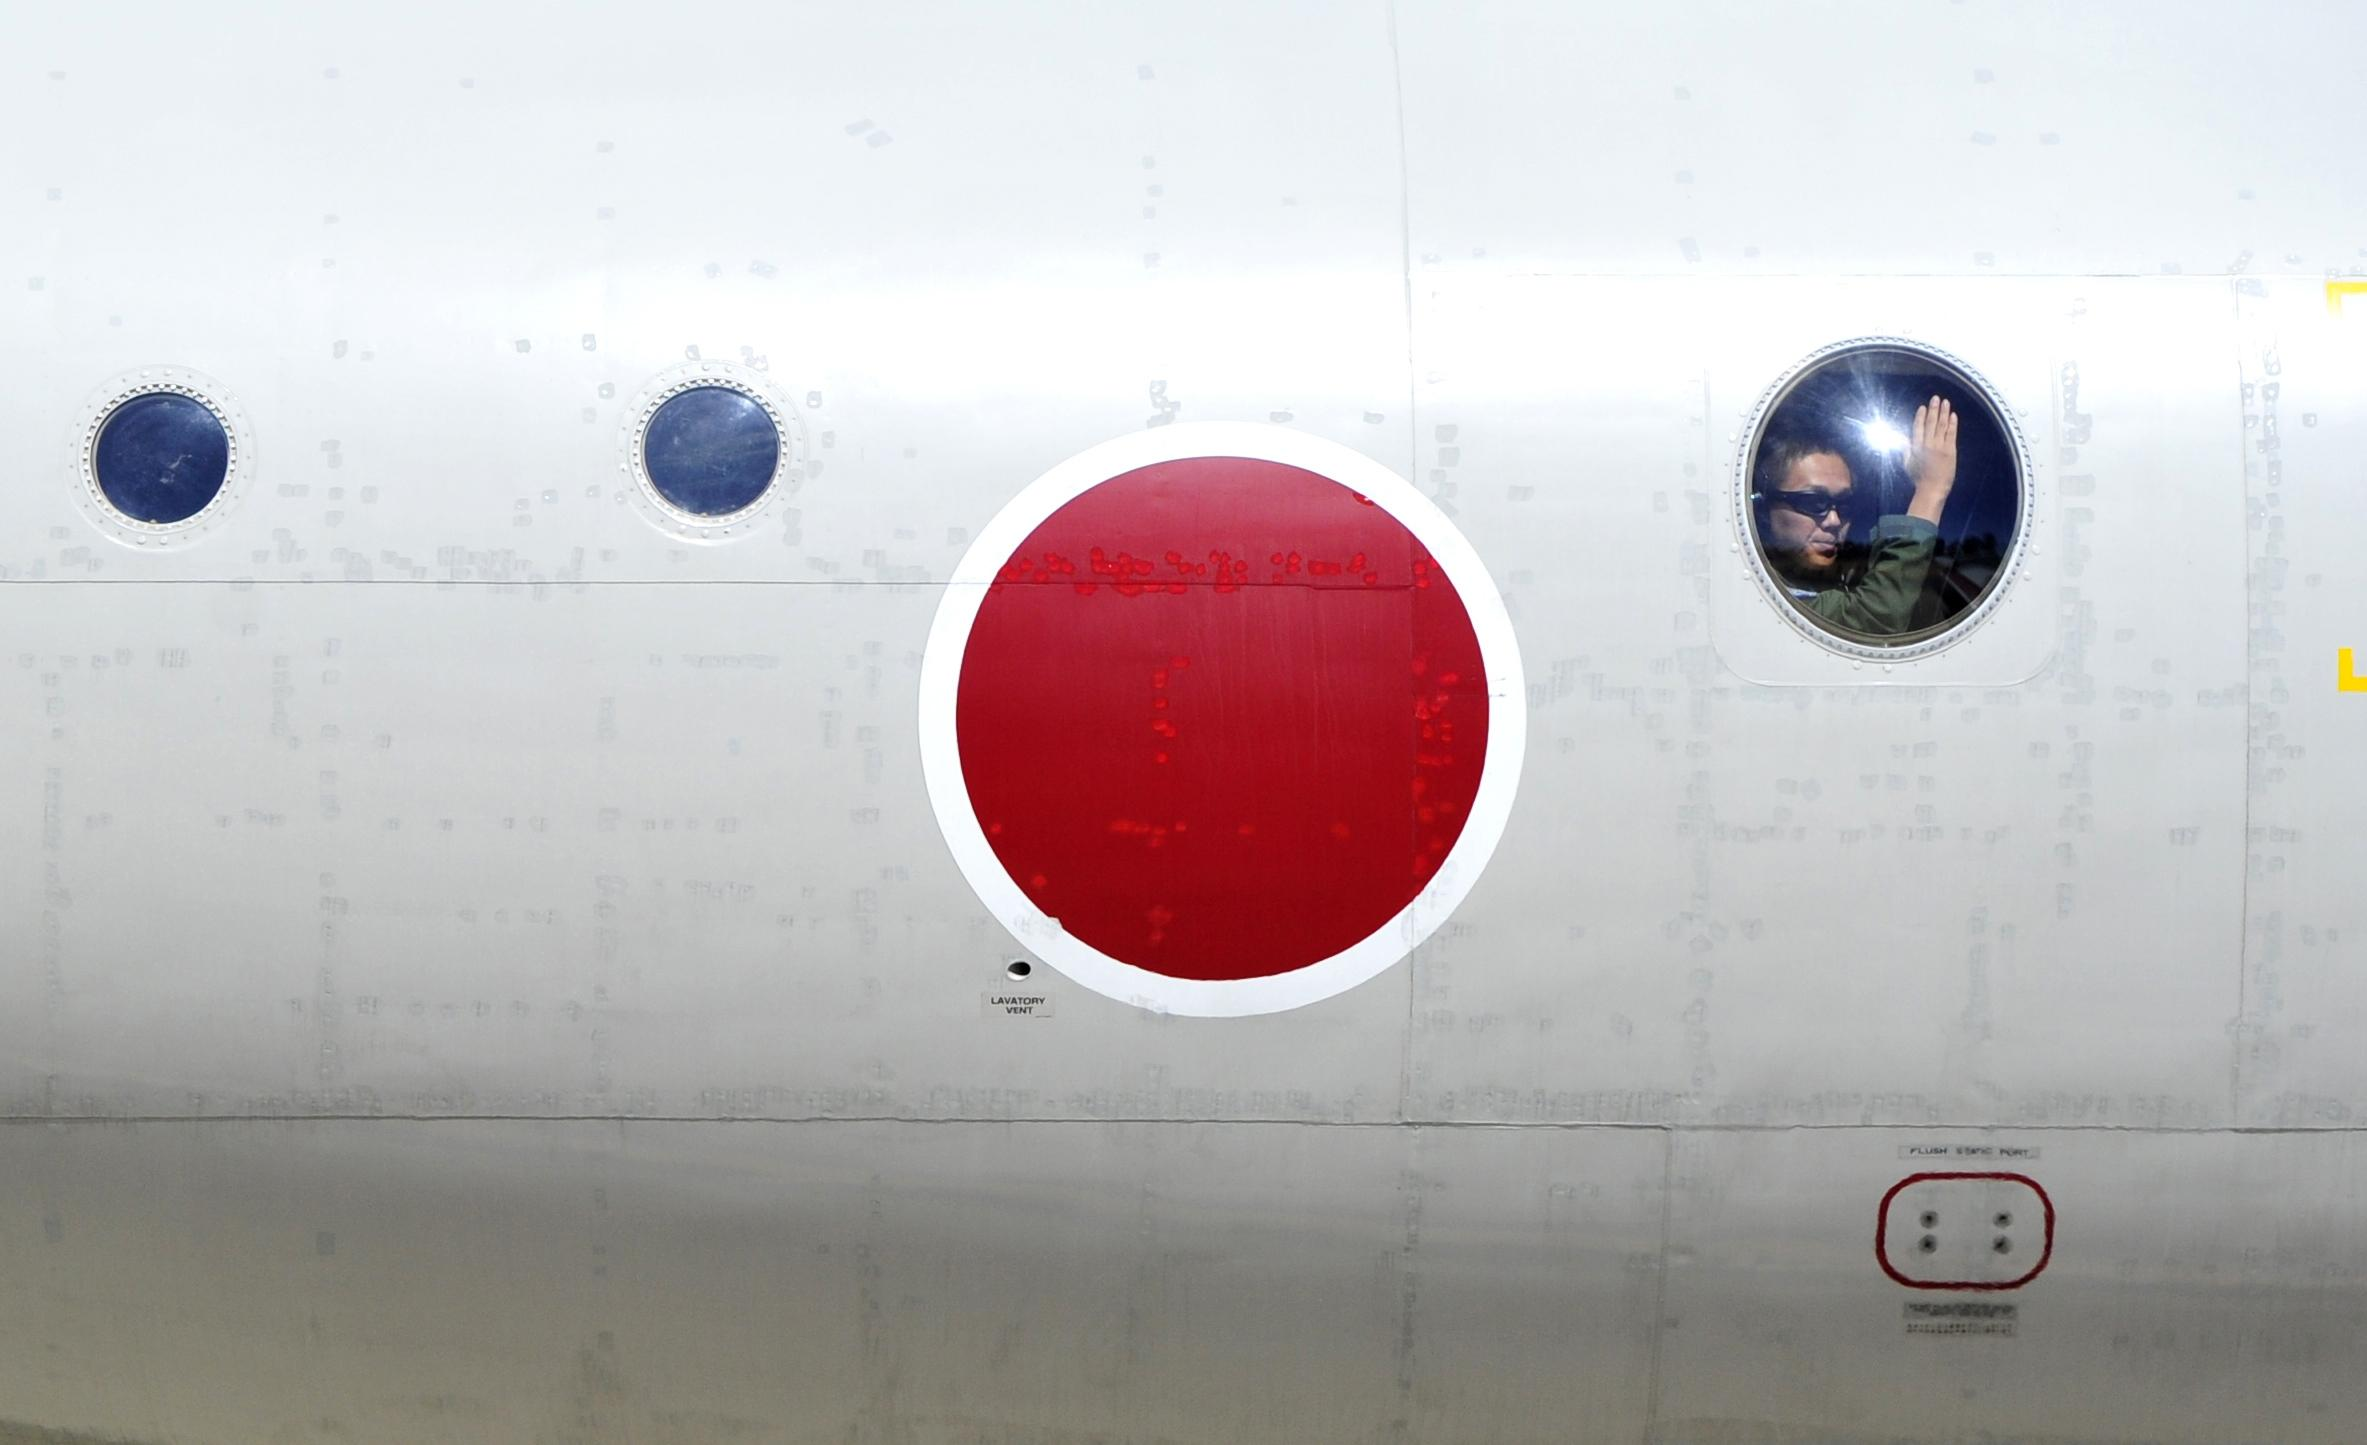 Flight MH370 - Japan